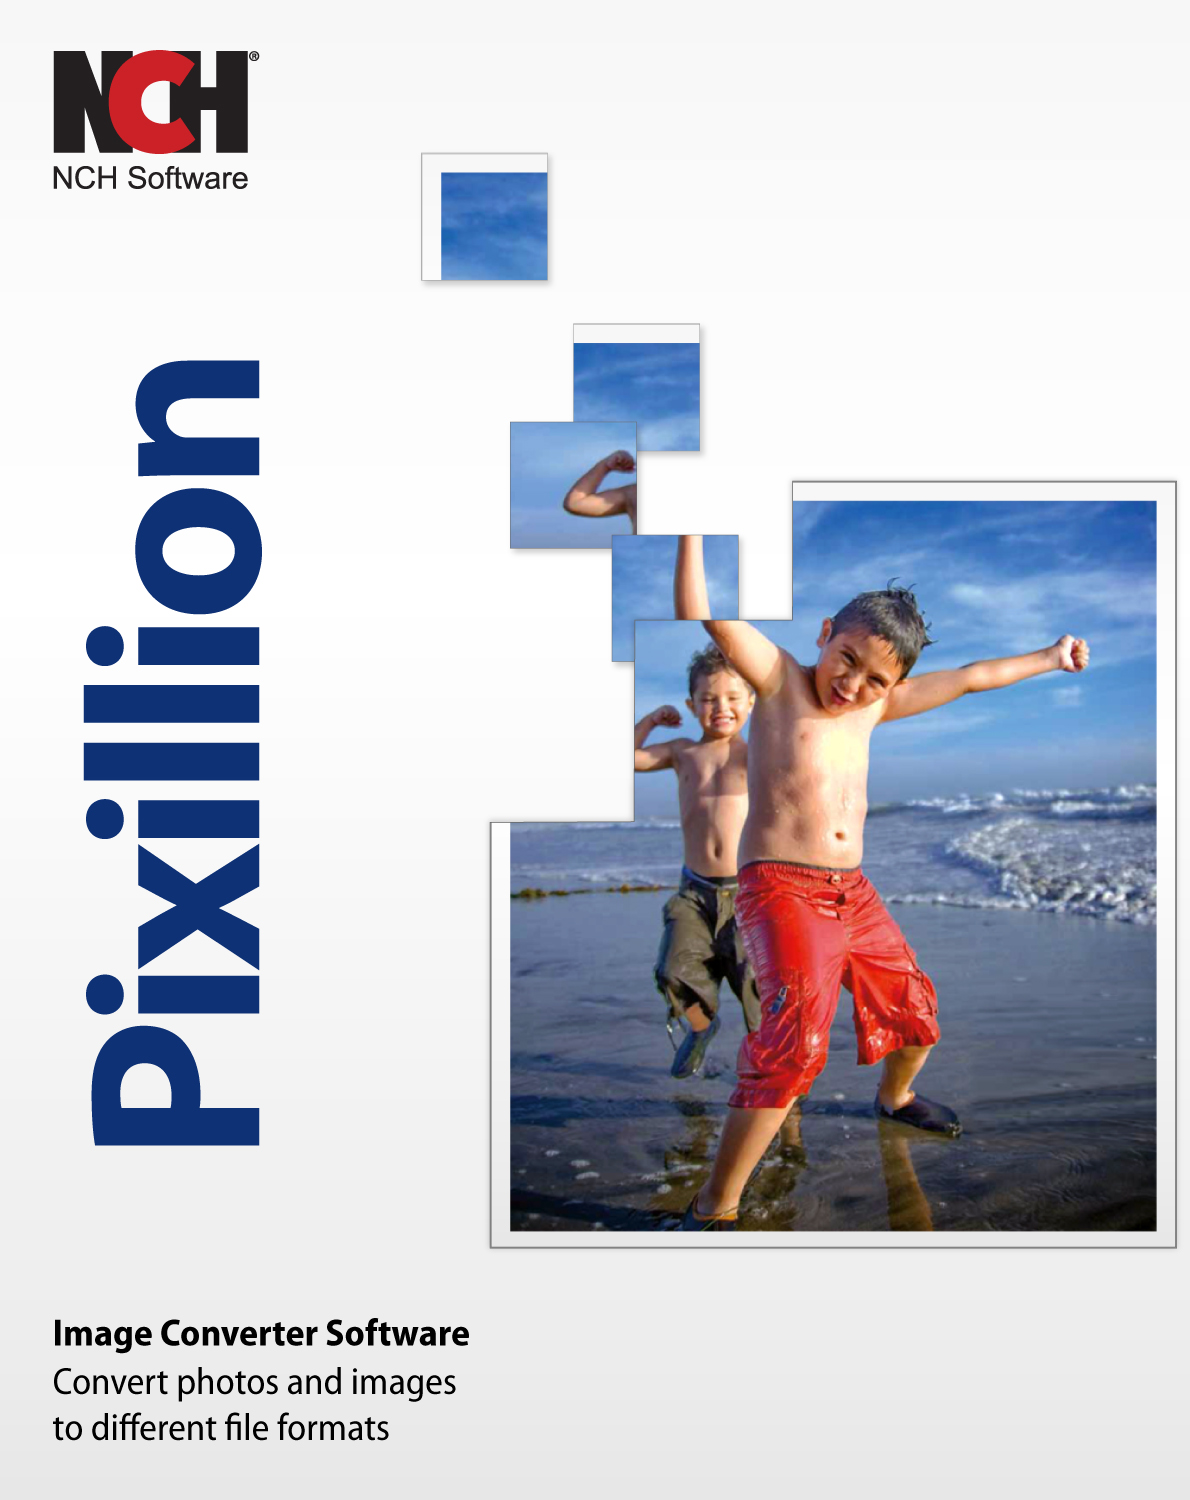 Pixillion Image Converter Software - Convert Photo and Image File Formats [Download] by NCH Software